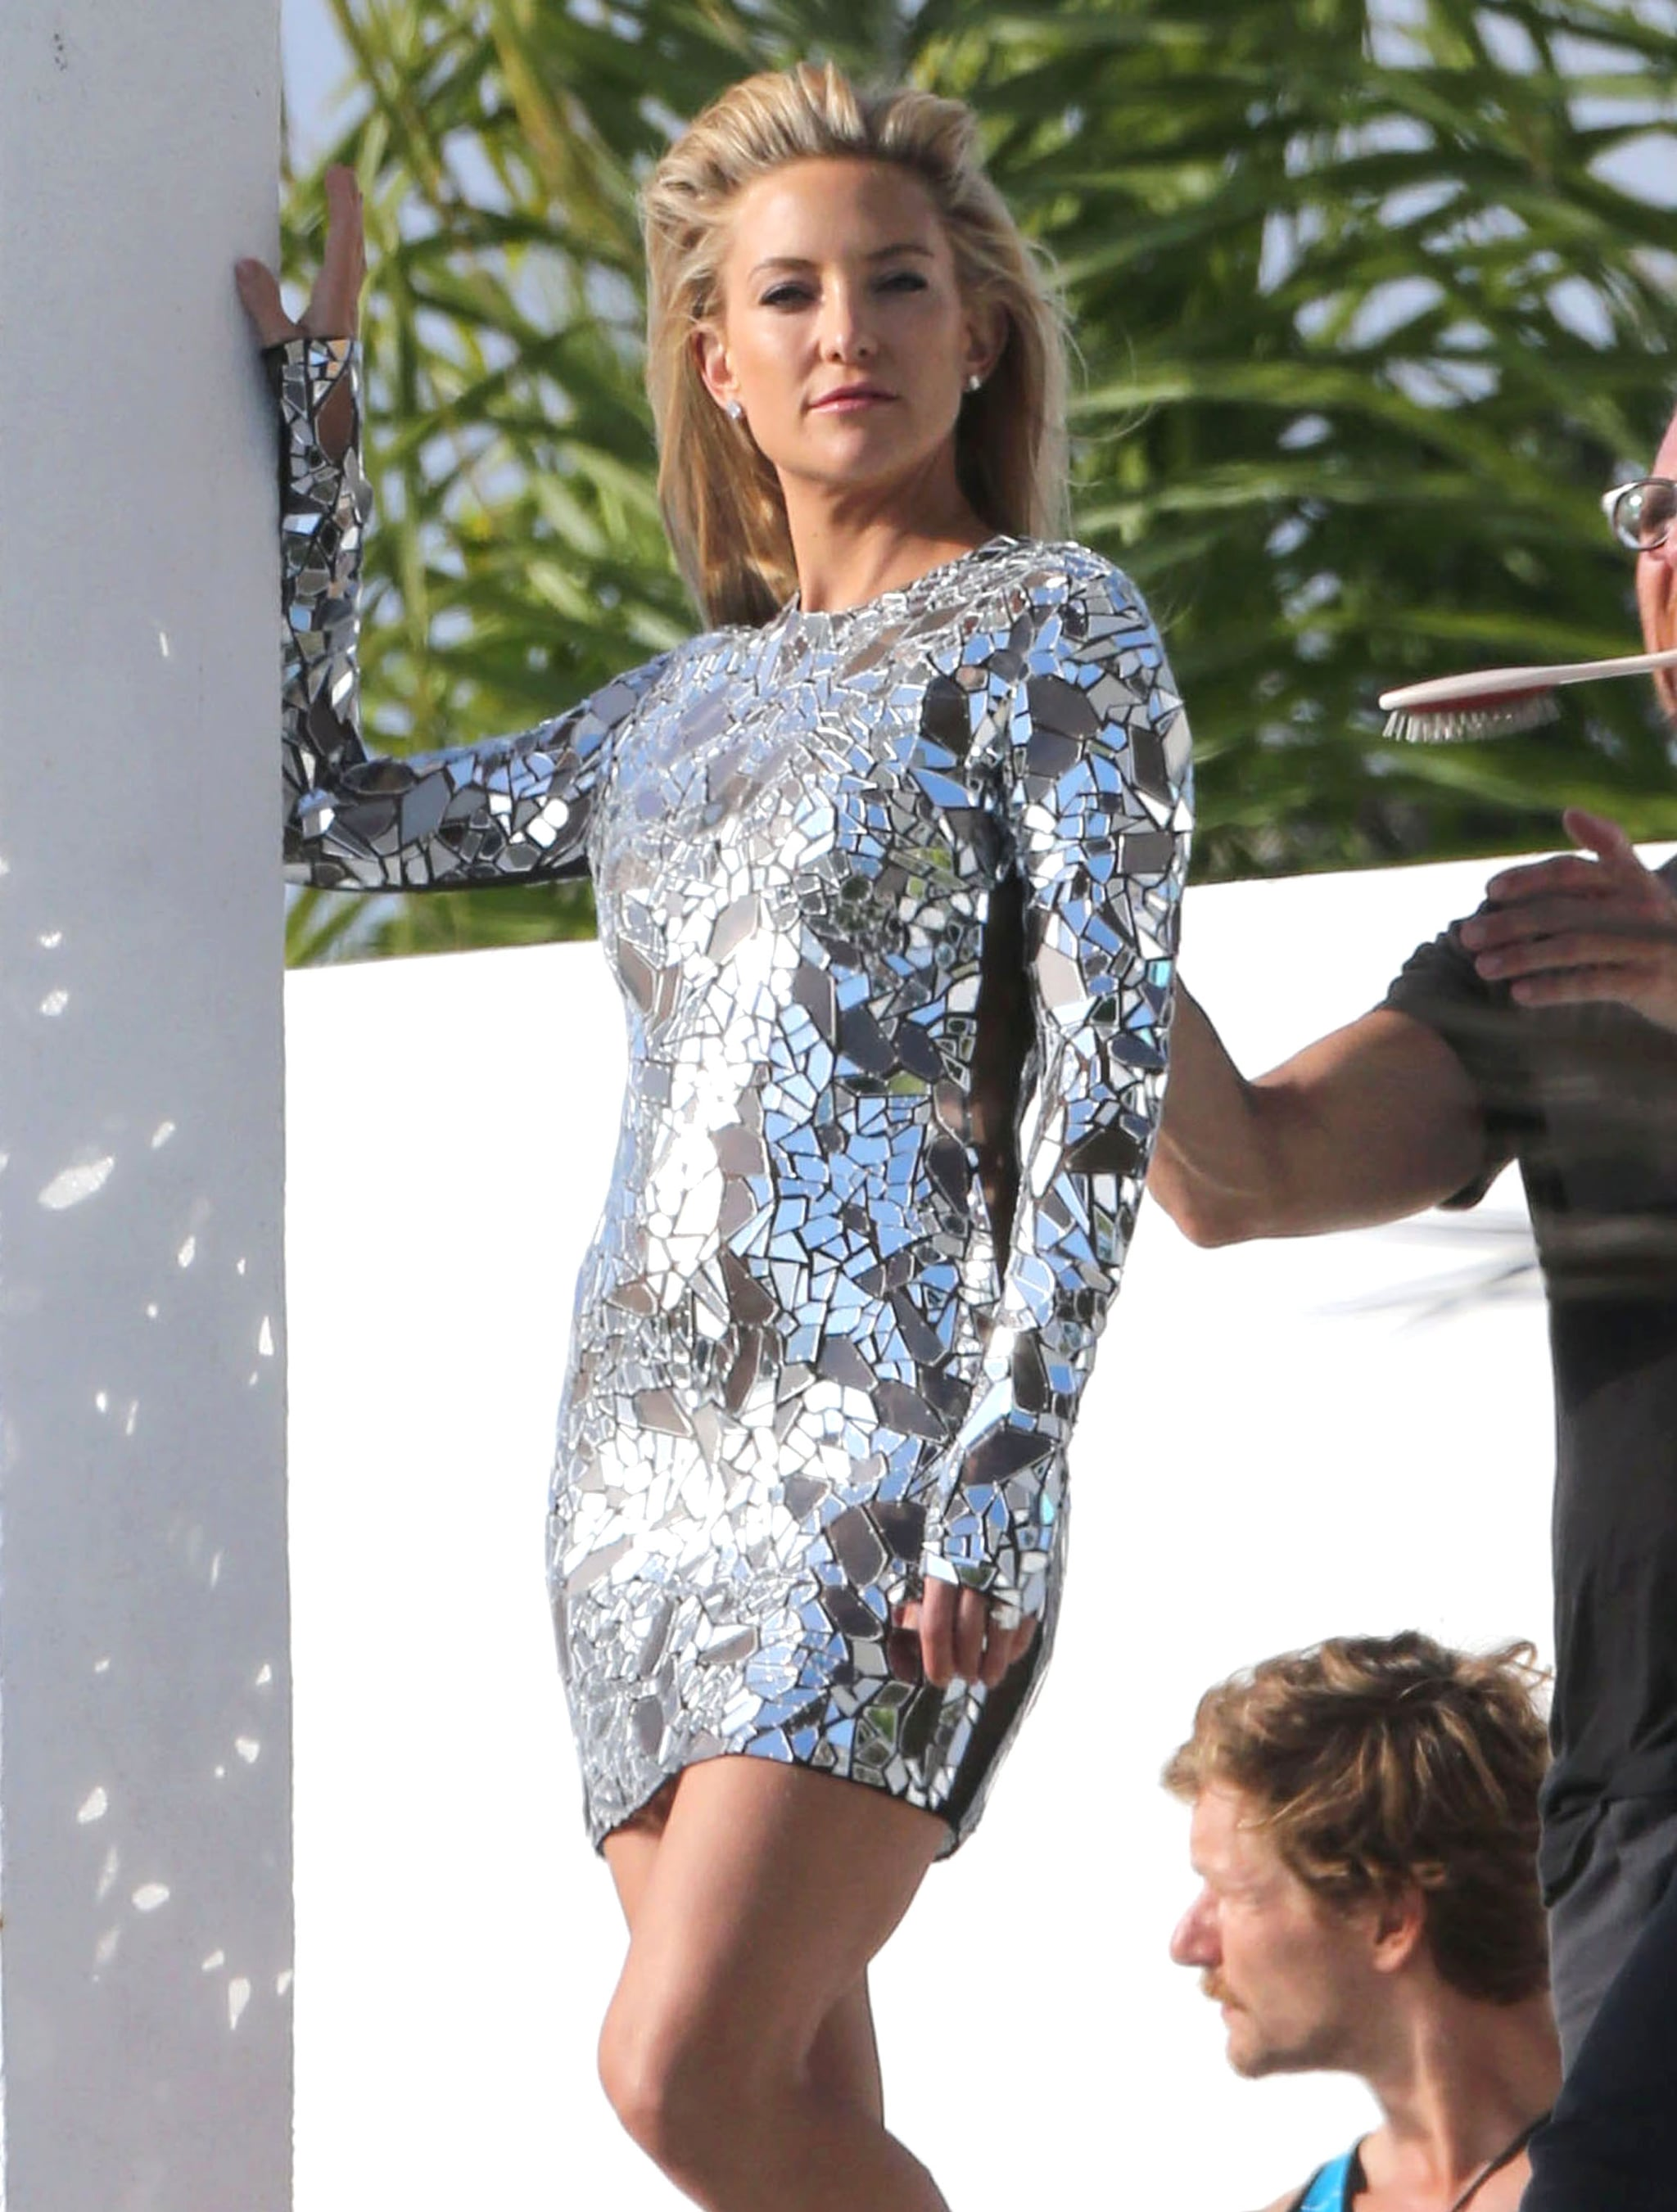 Kate Hudson sported a sexy silver dress for an LA photo shoot.